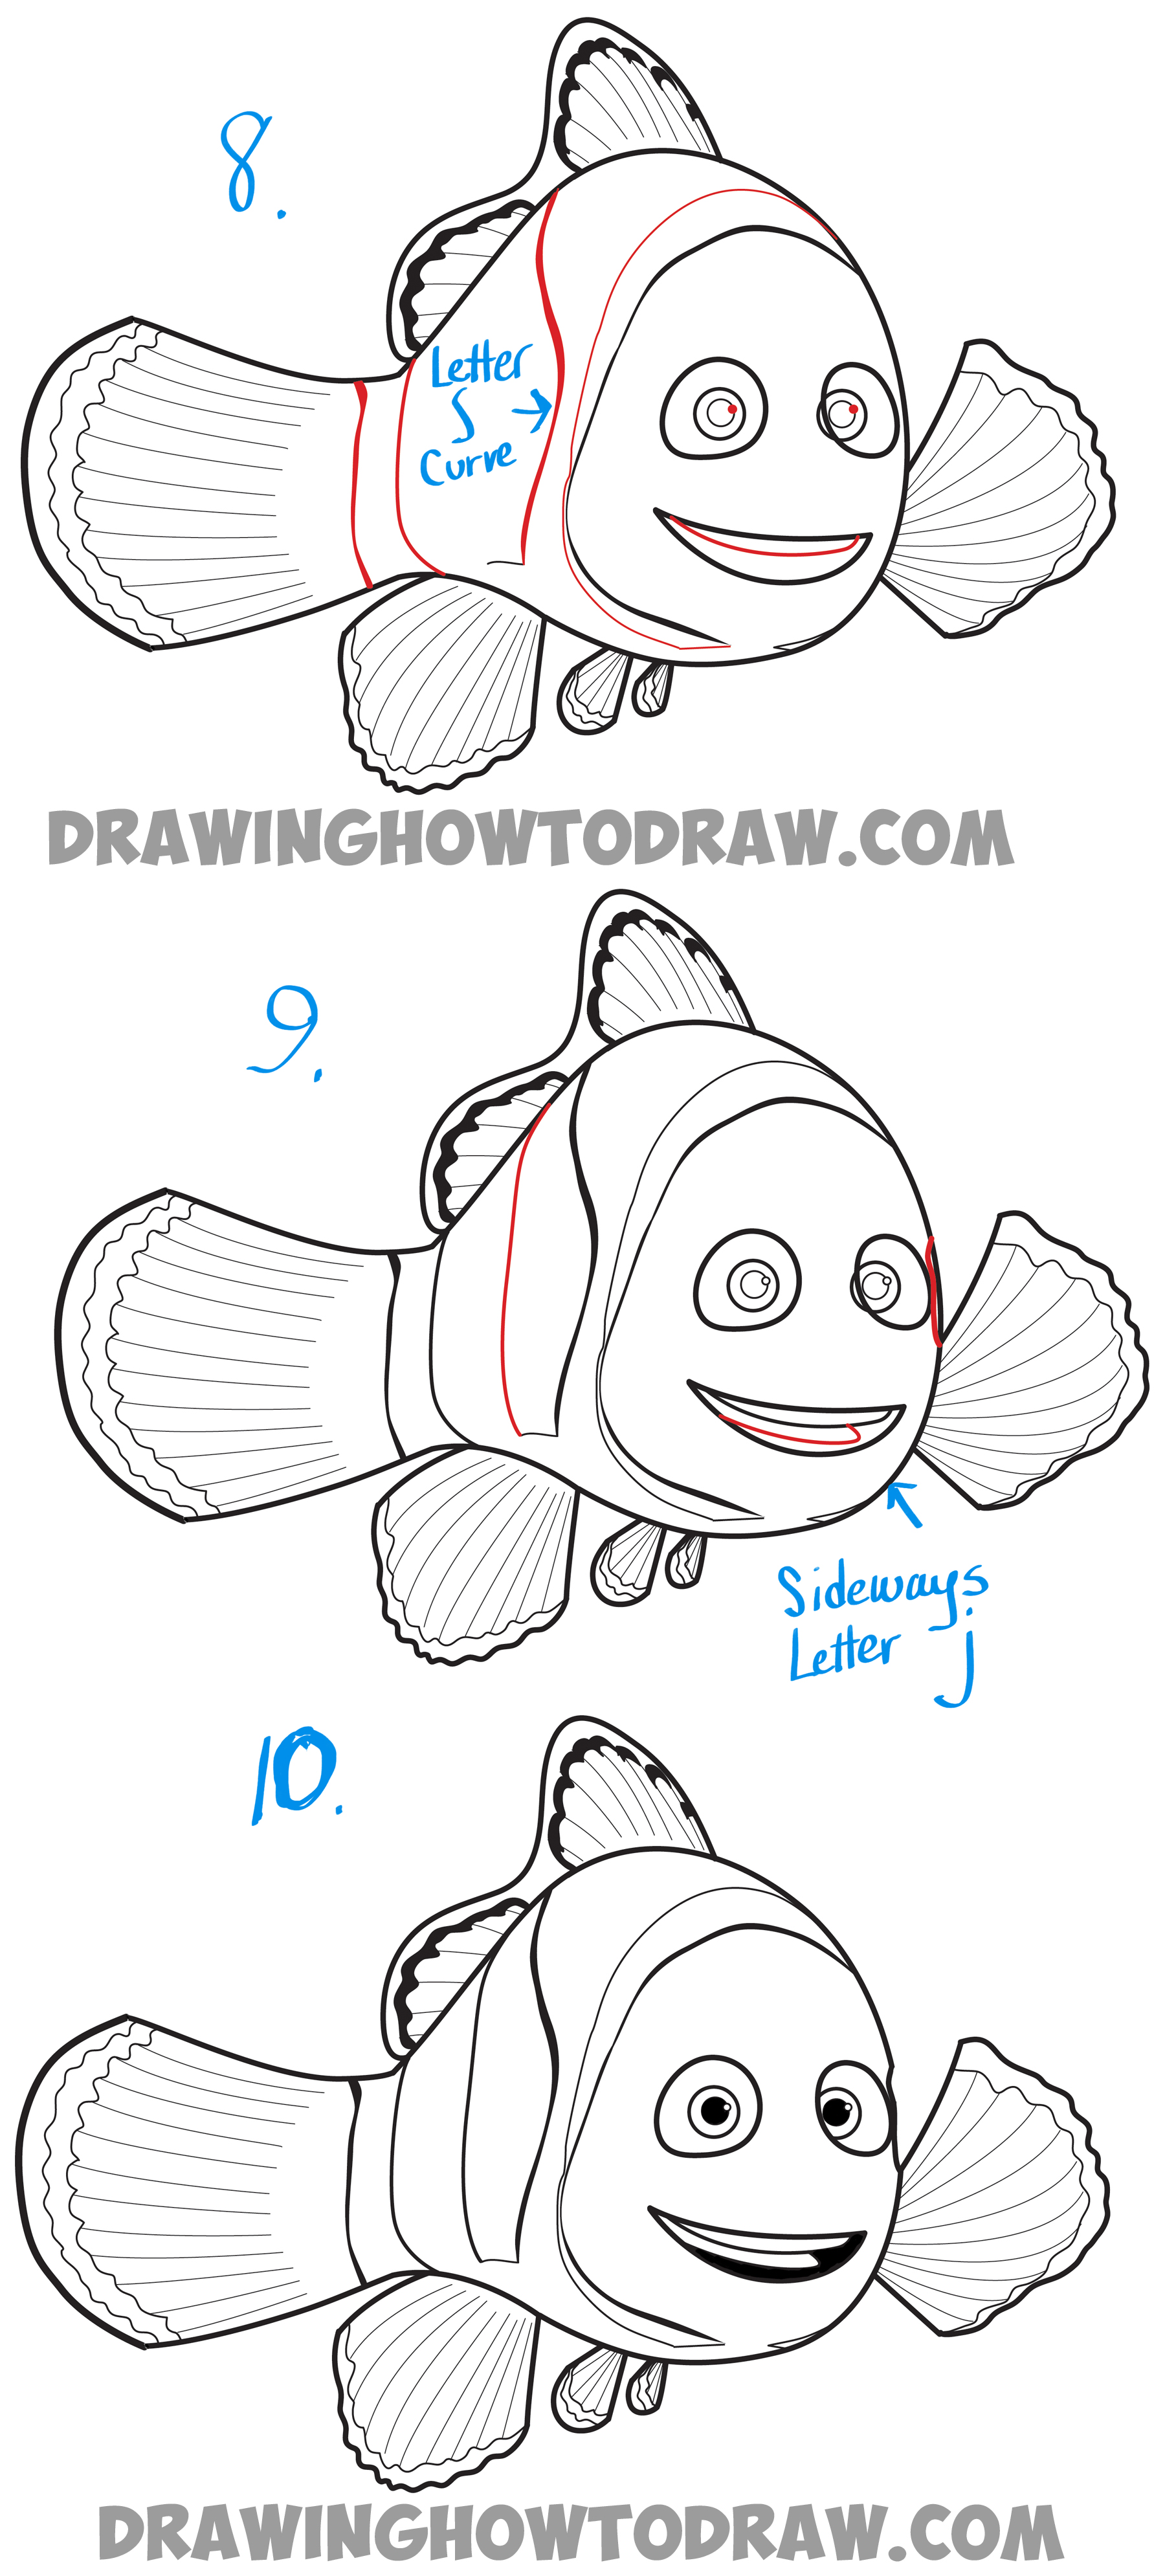 How to Draw Marlin from Finding Dory and Finding Nemo - Easy Step by Step Drawing Tutorial